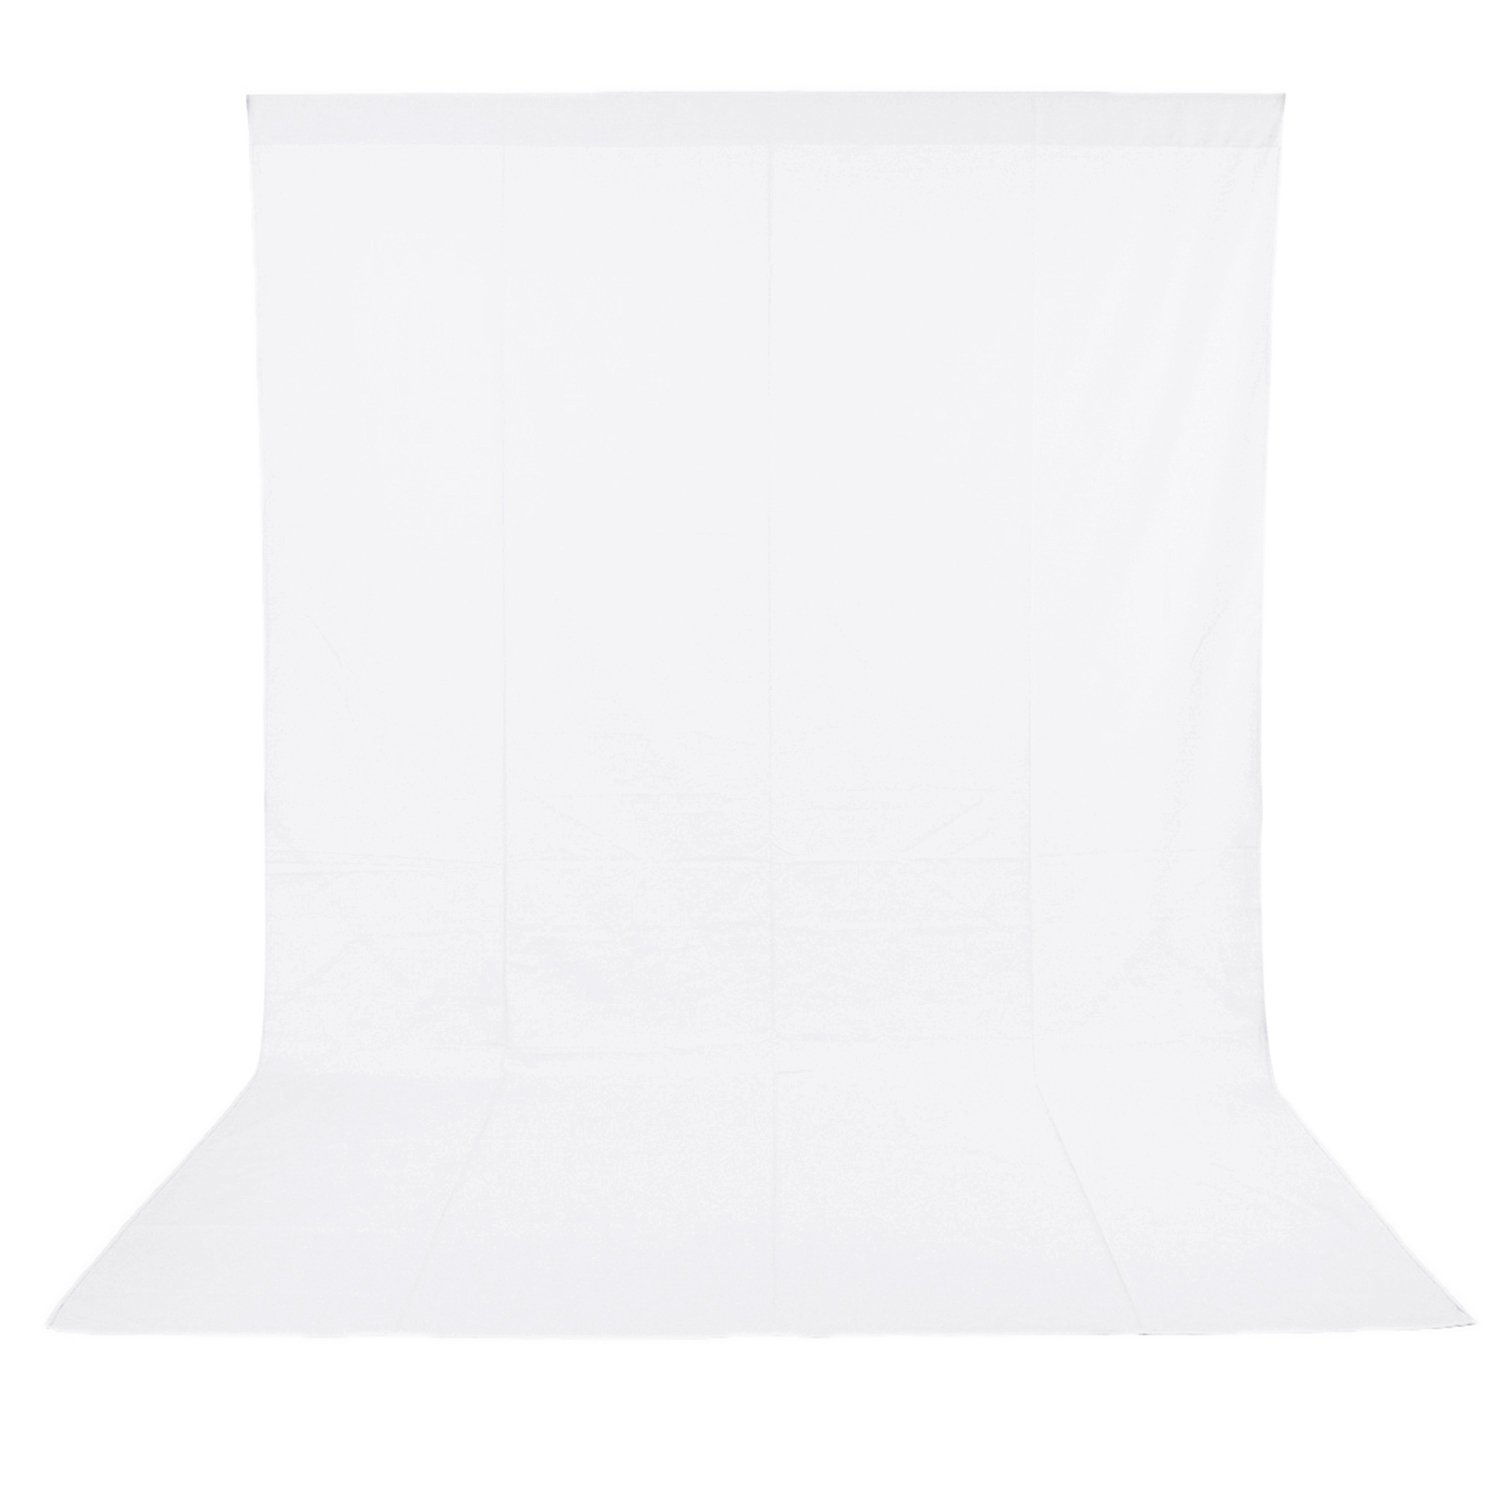 Neewer 6 x 9FT / 1.8 x 2.8M Photo Studio 100% Pure Muslin Collapsible Backdrop Background for Photography,Video and Televison (Background ONLY) - White by Neewer